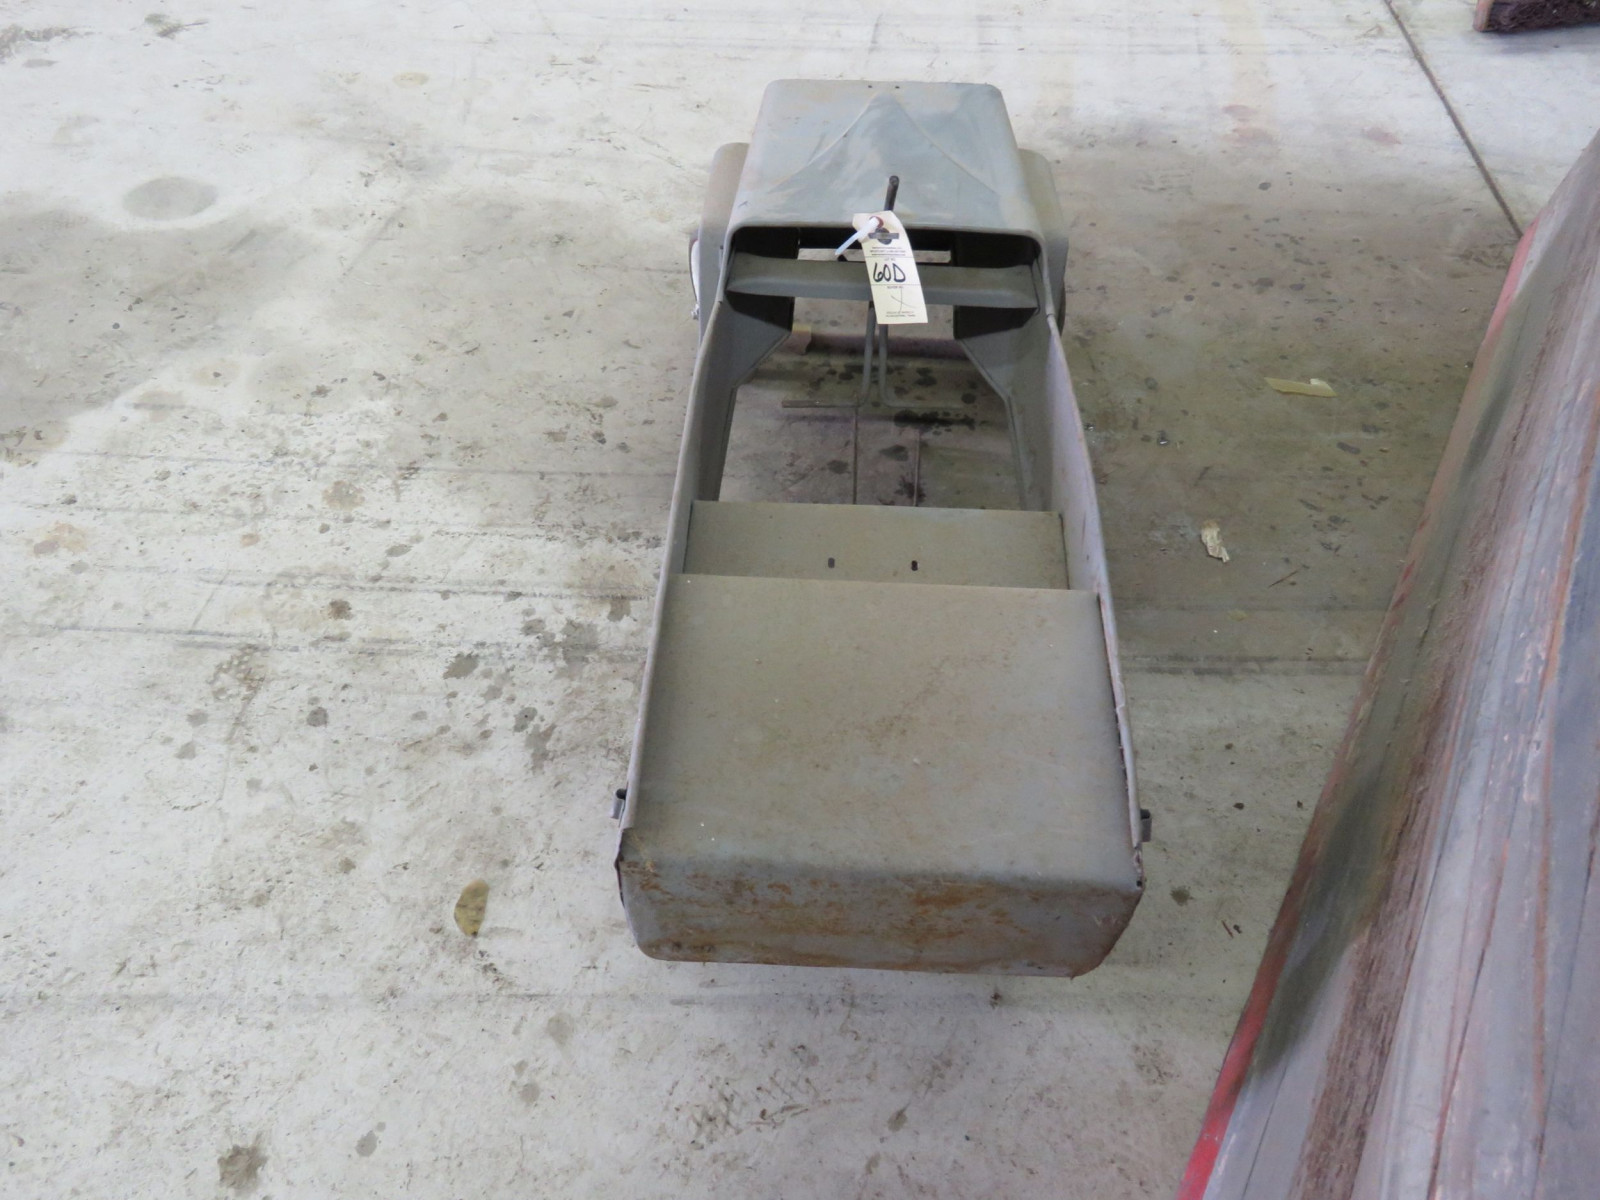 Vintage Garton Military Willys Jeep Pedal Car for restore - Image 4